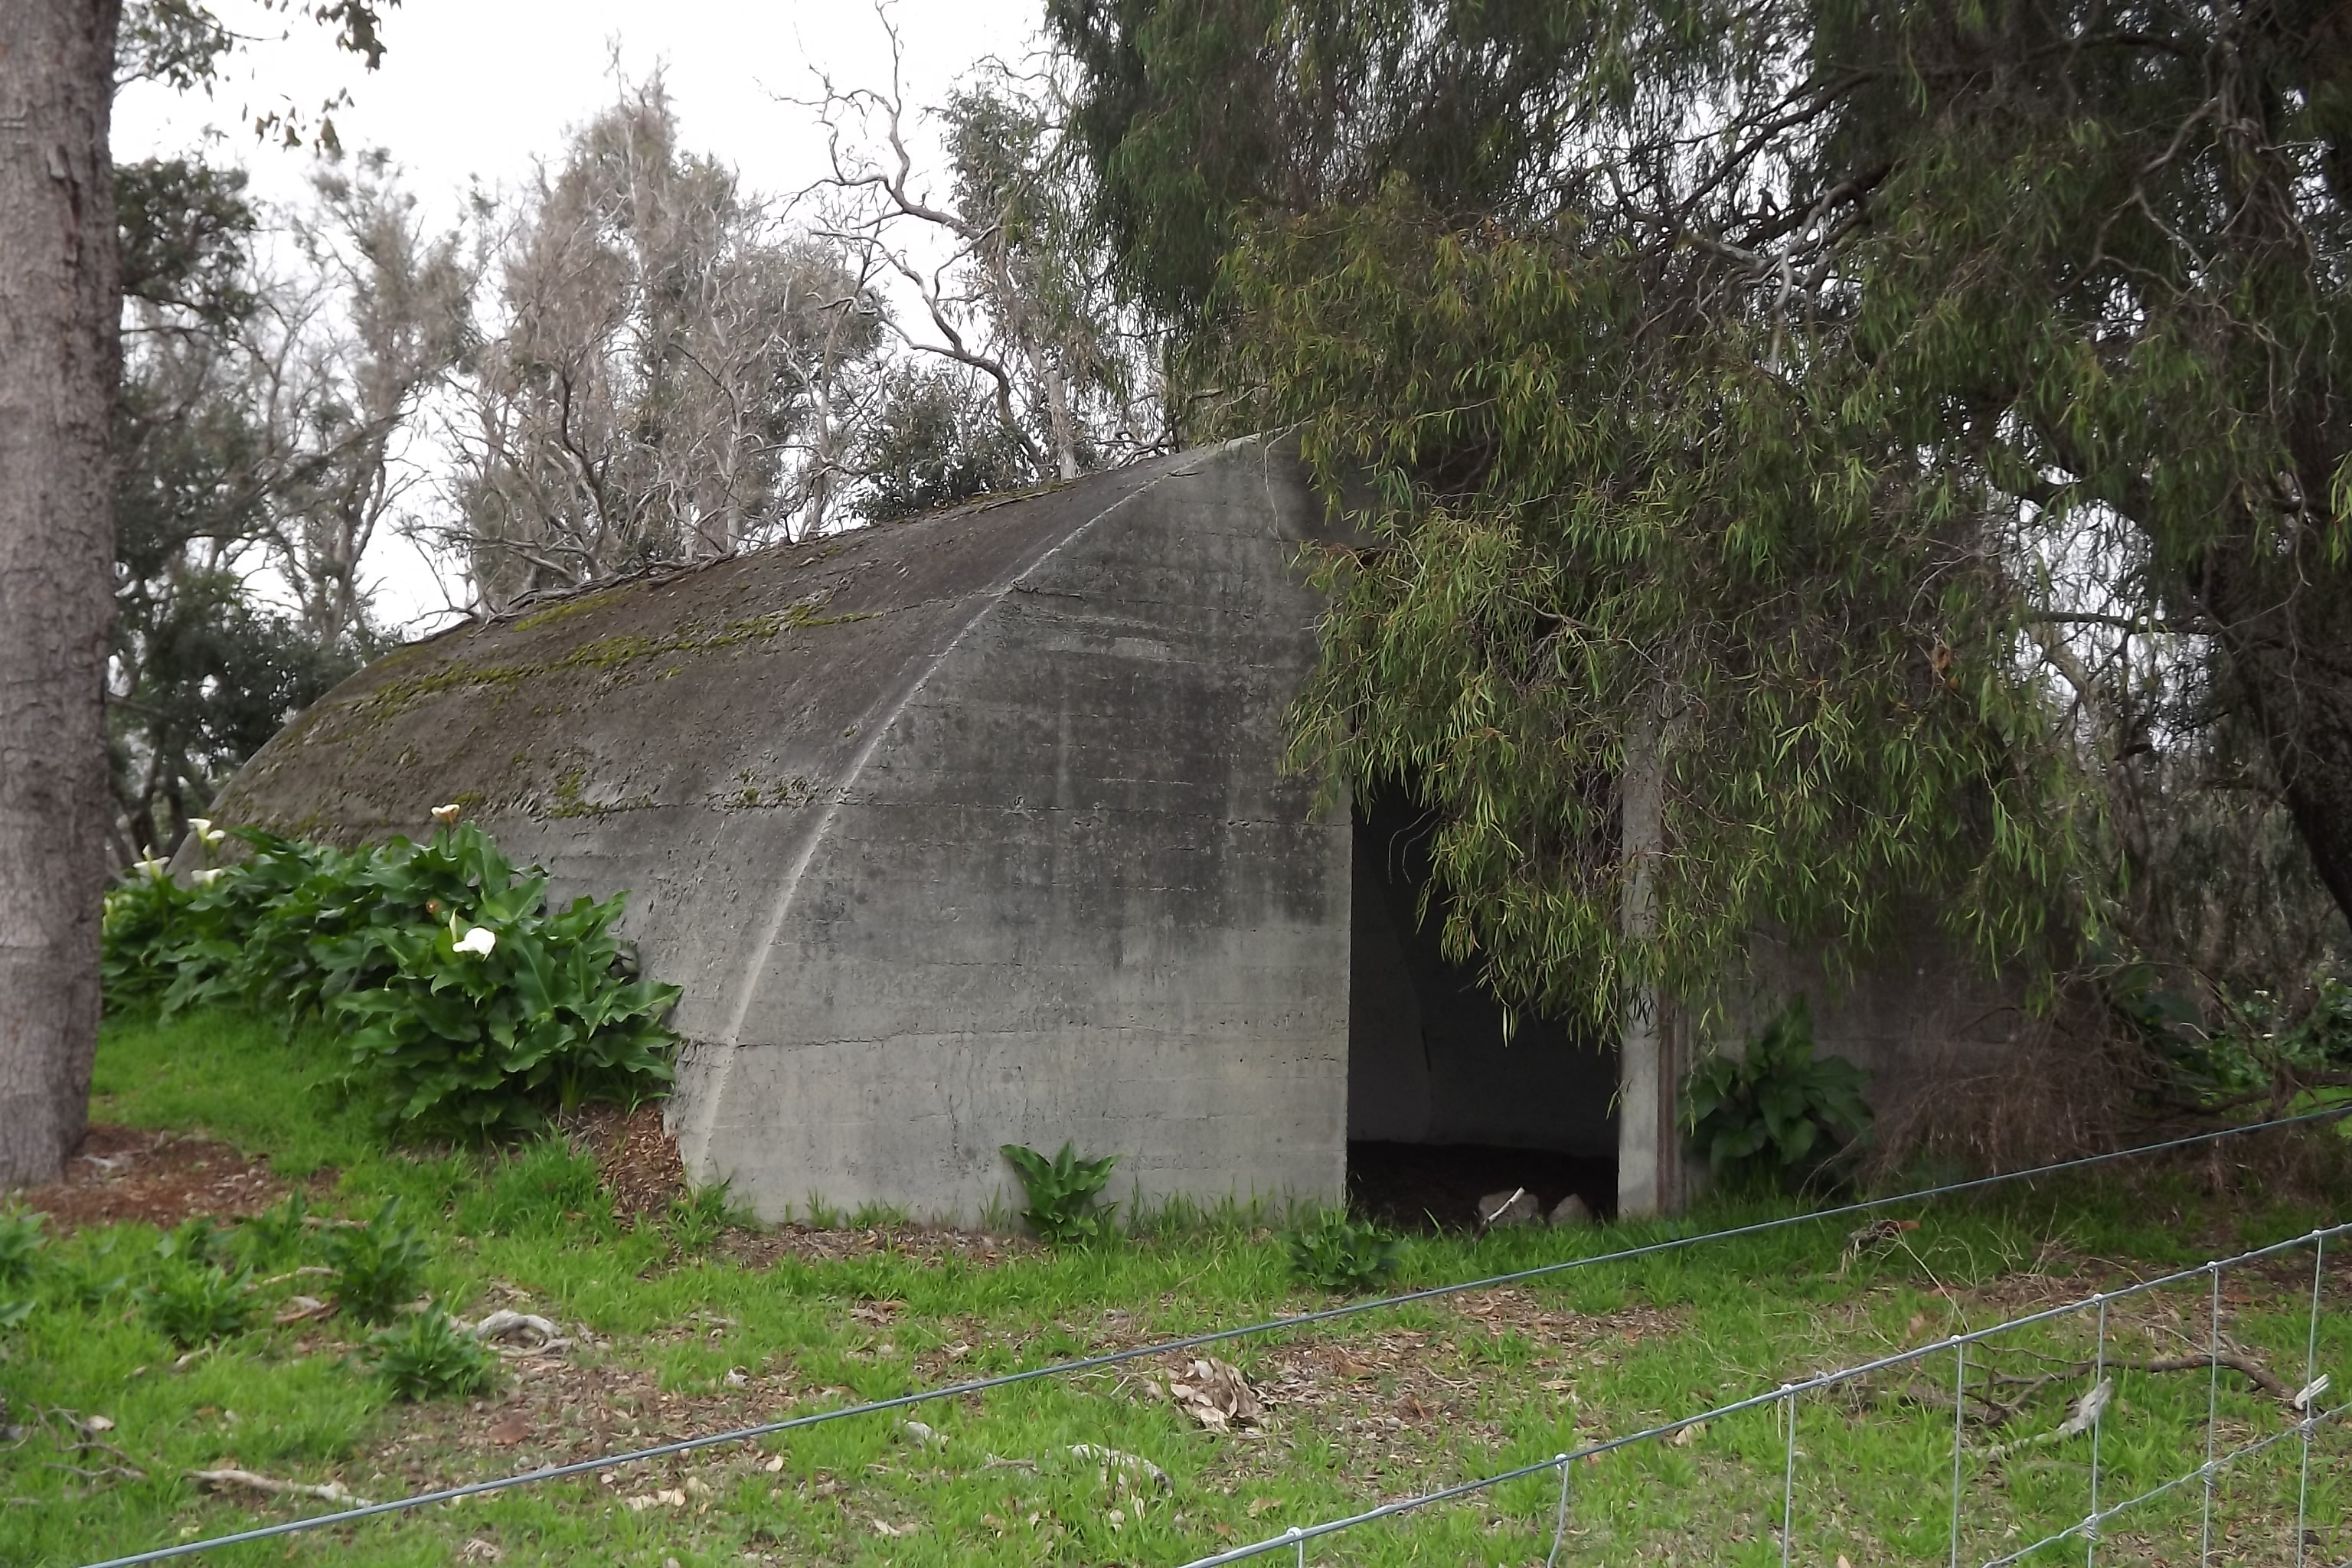 One end of possible amunition hut.